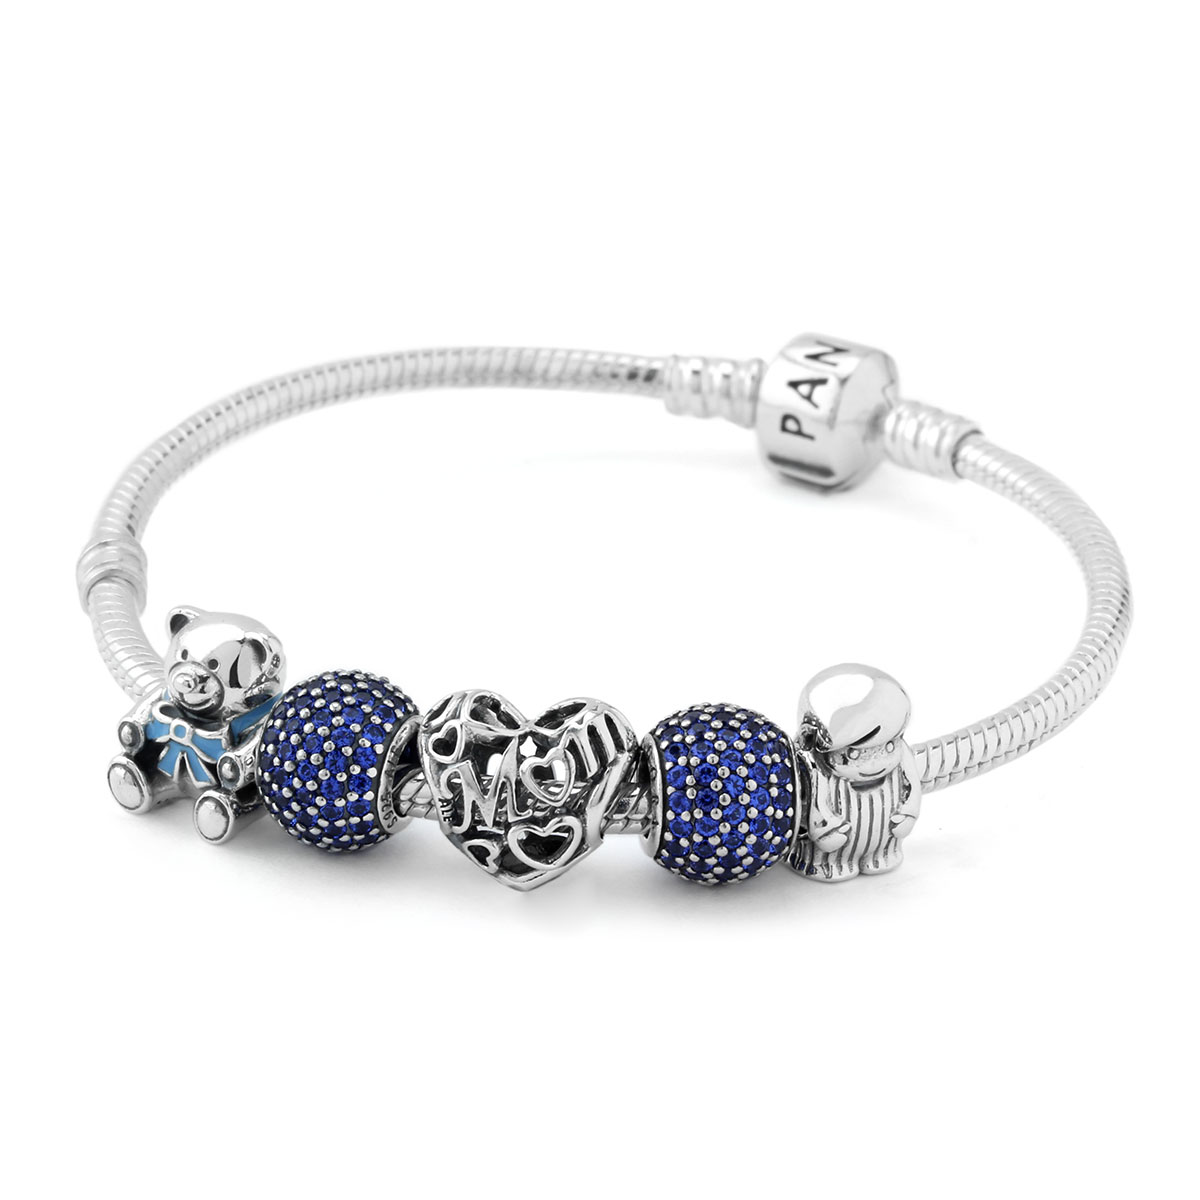 pandora bracelet design ideas home design ideas - Pandora Bracelet Design Ideas